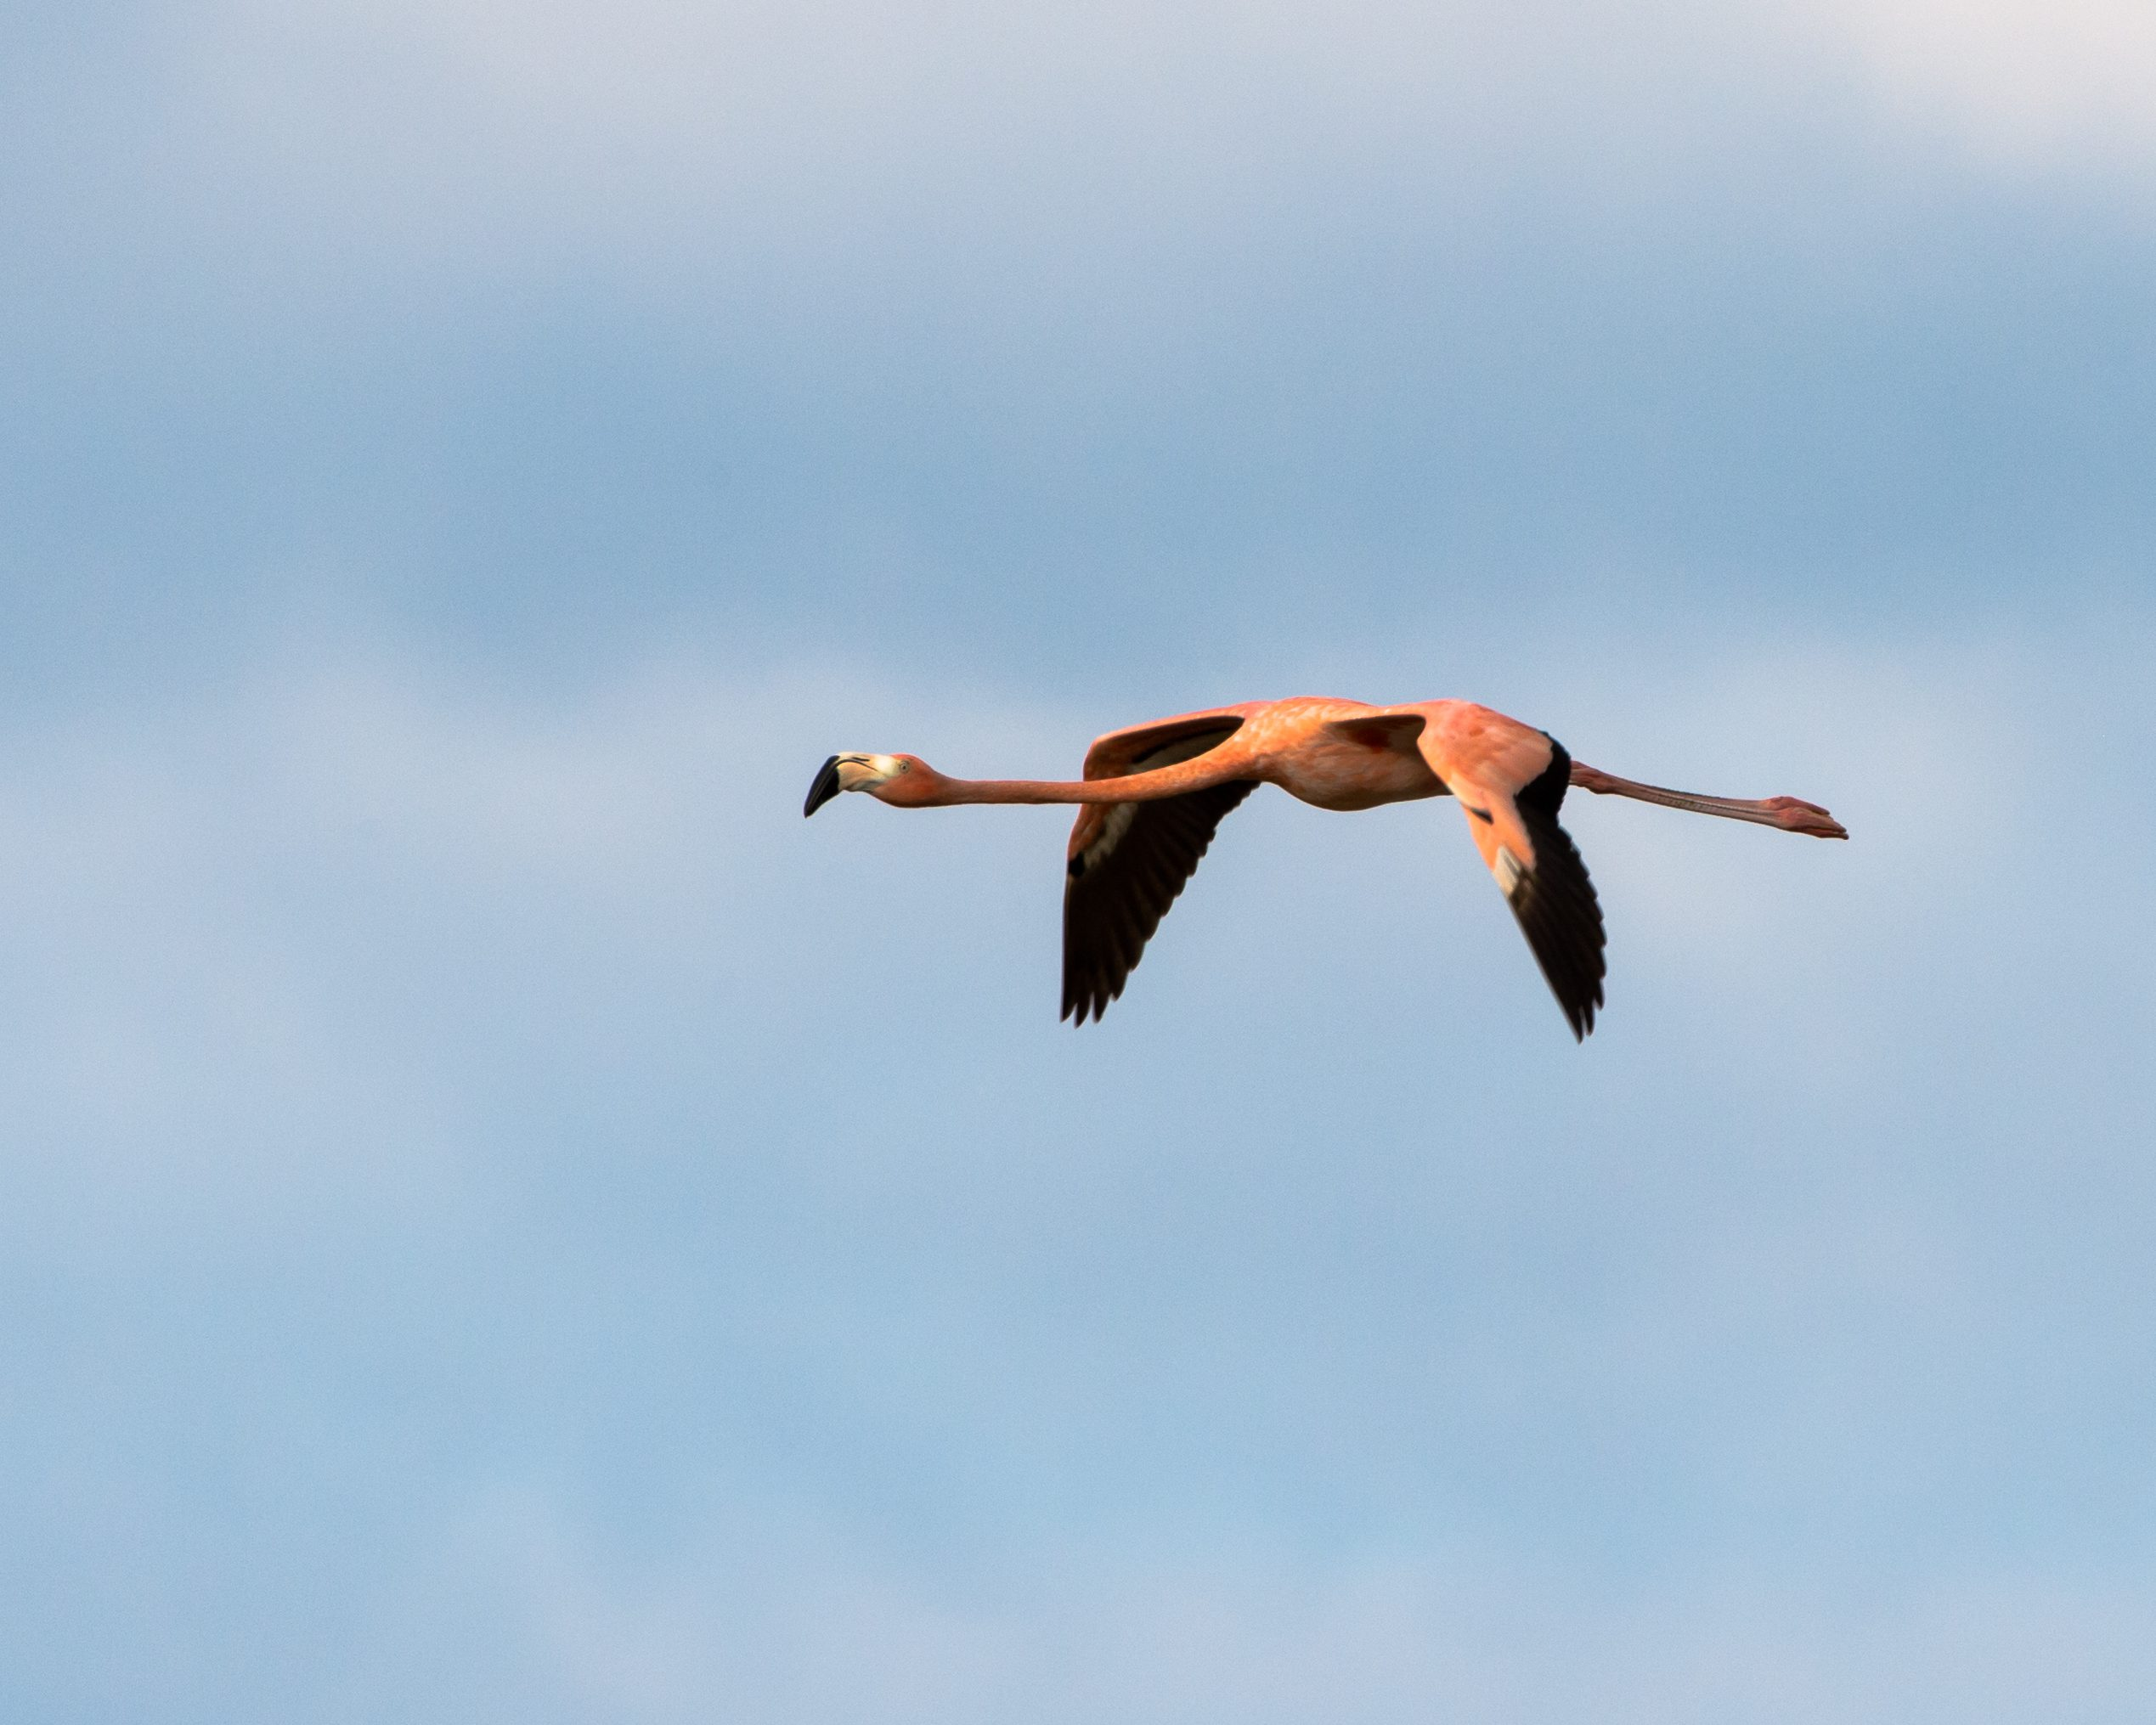 2-15-13 Cayo Coco - Greater Flamingo-614-2